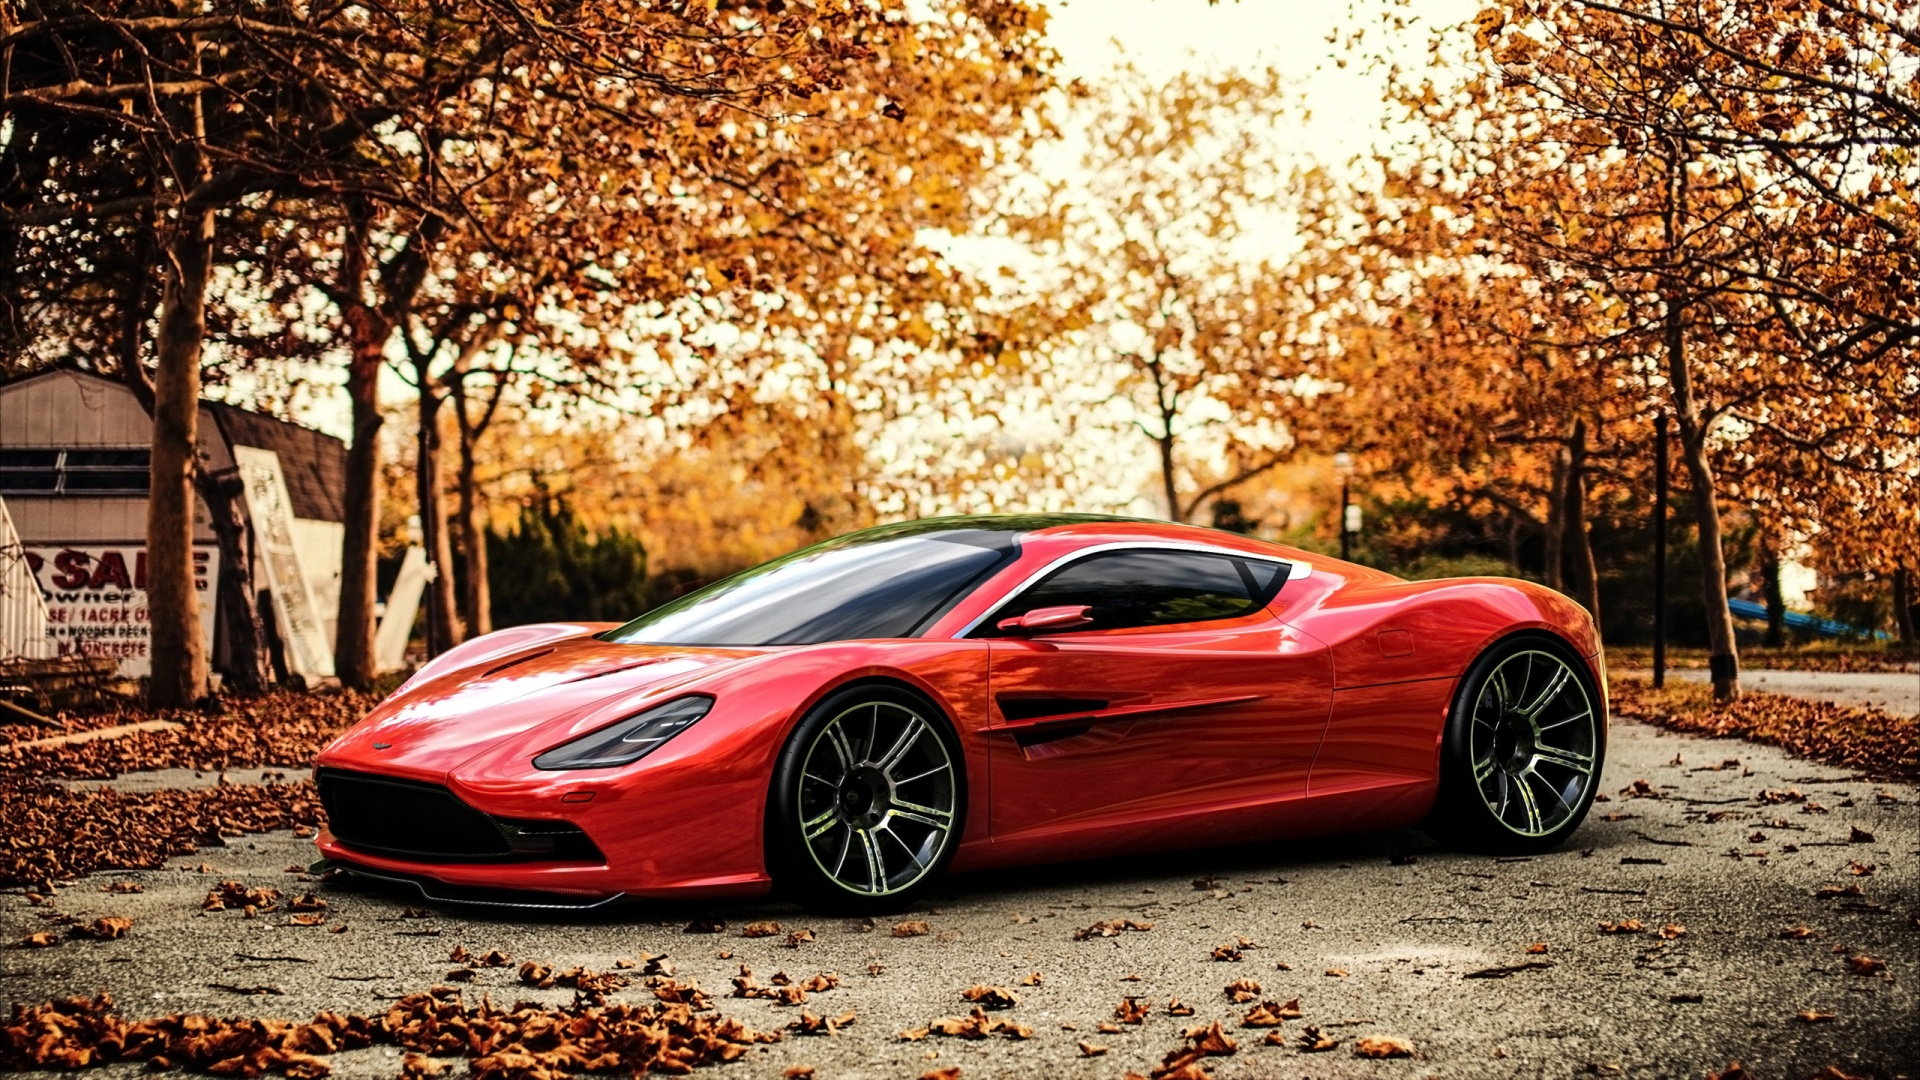 Car And Driver 10 Best >> 25+ Exotic & Awesome Car Wallpapers [HD Edition] - Stugon